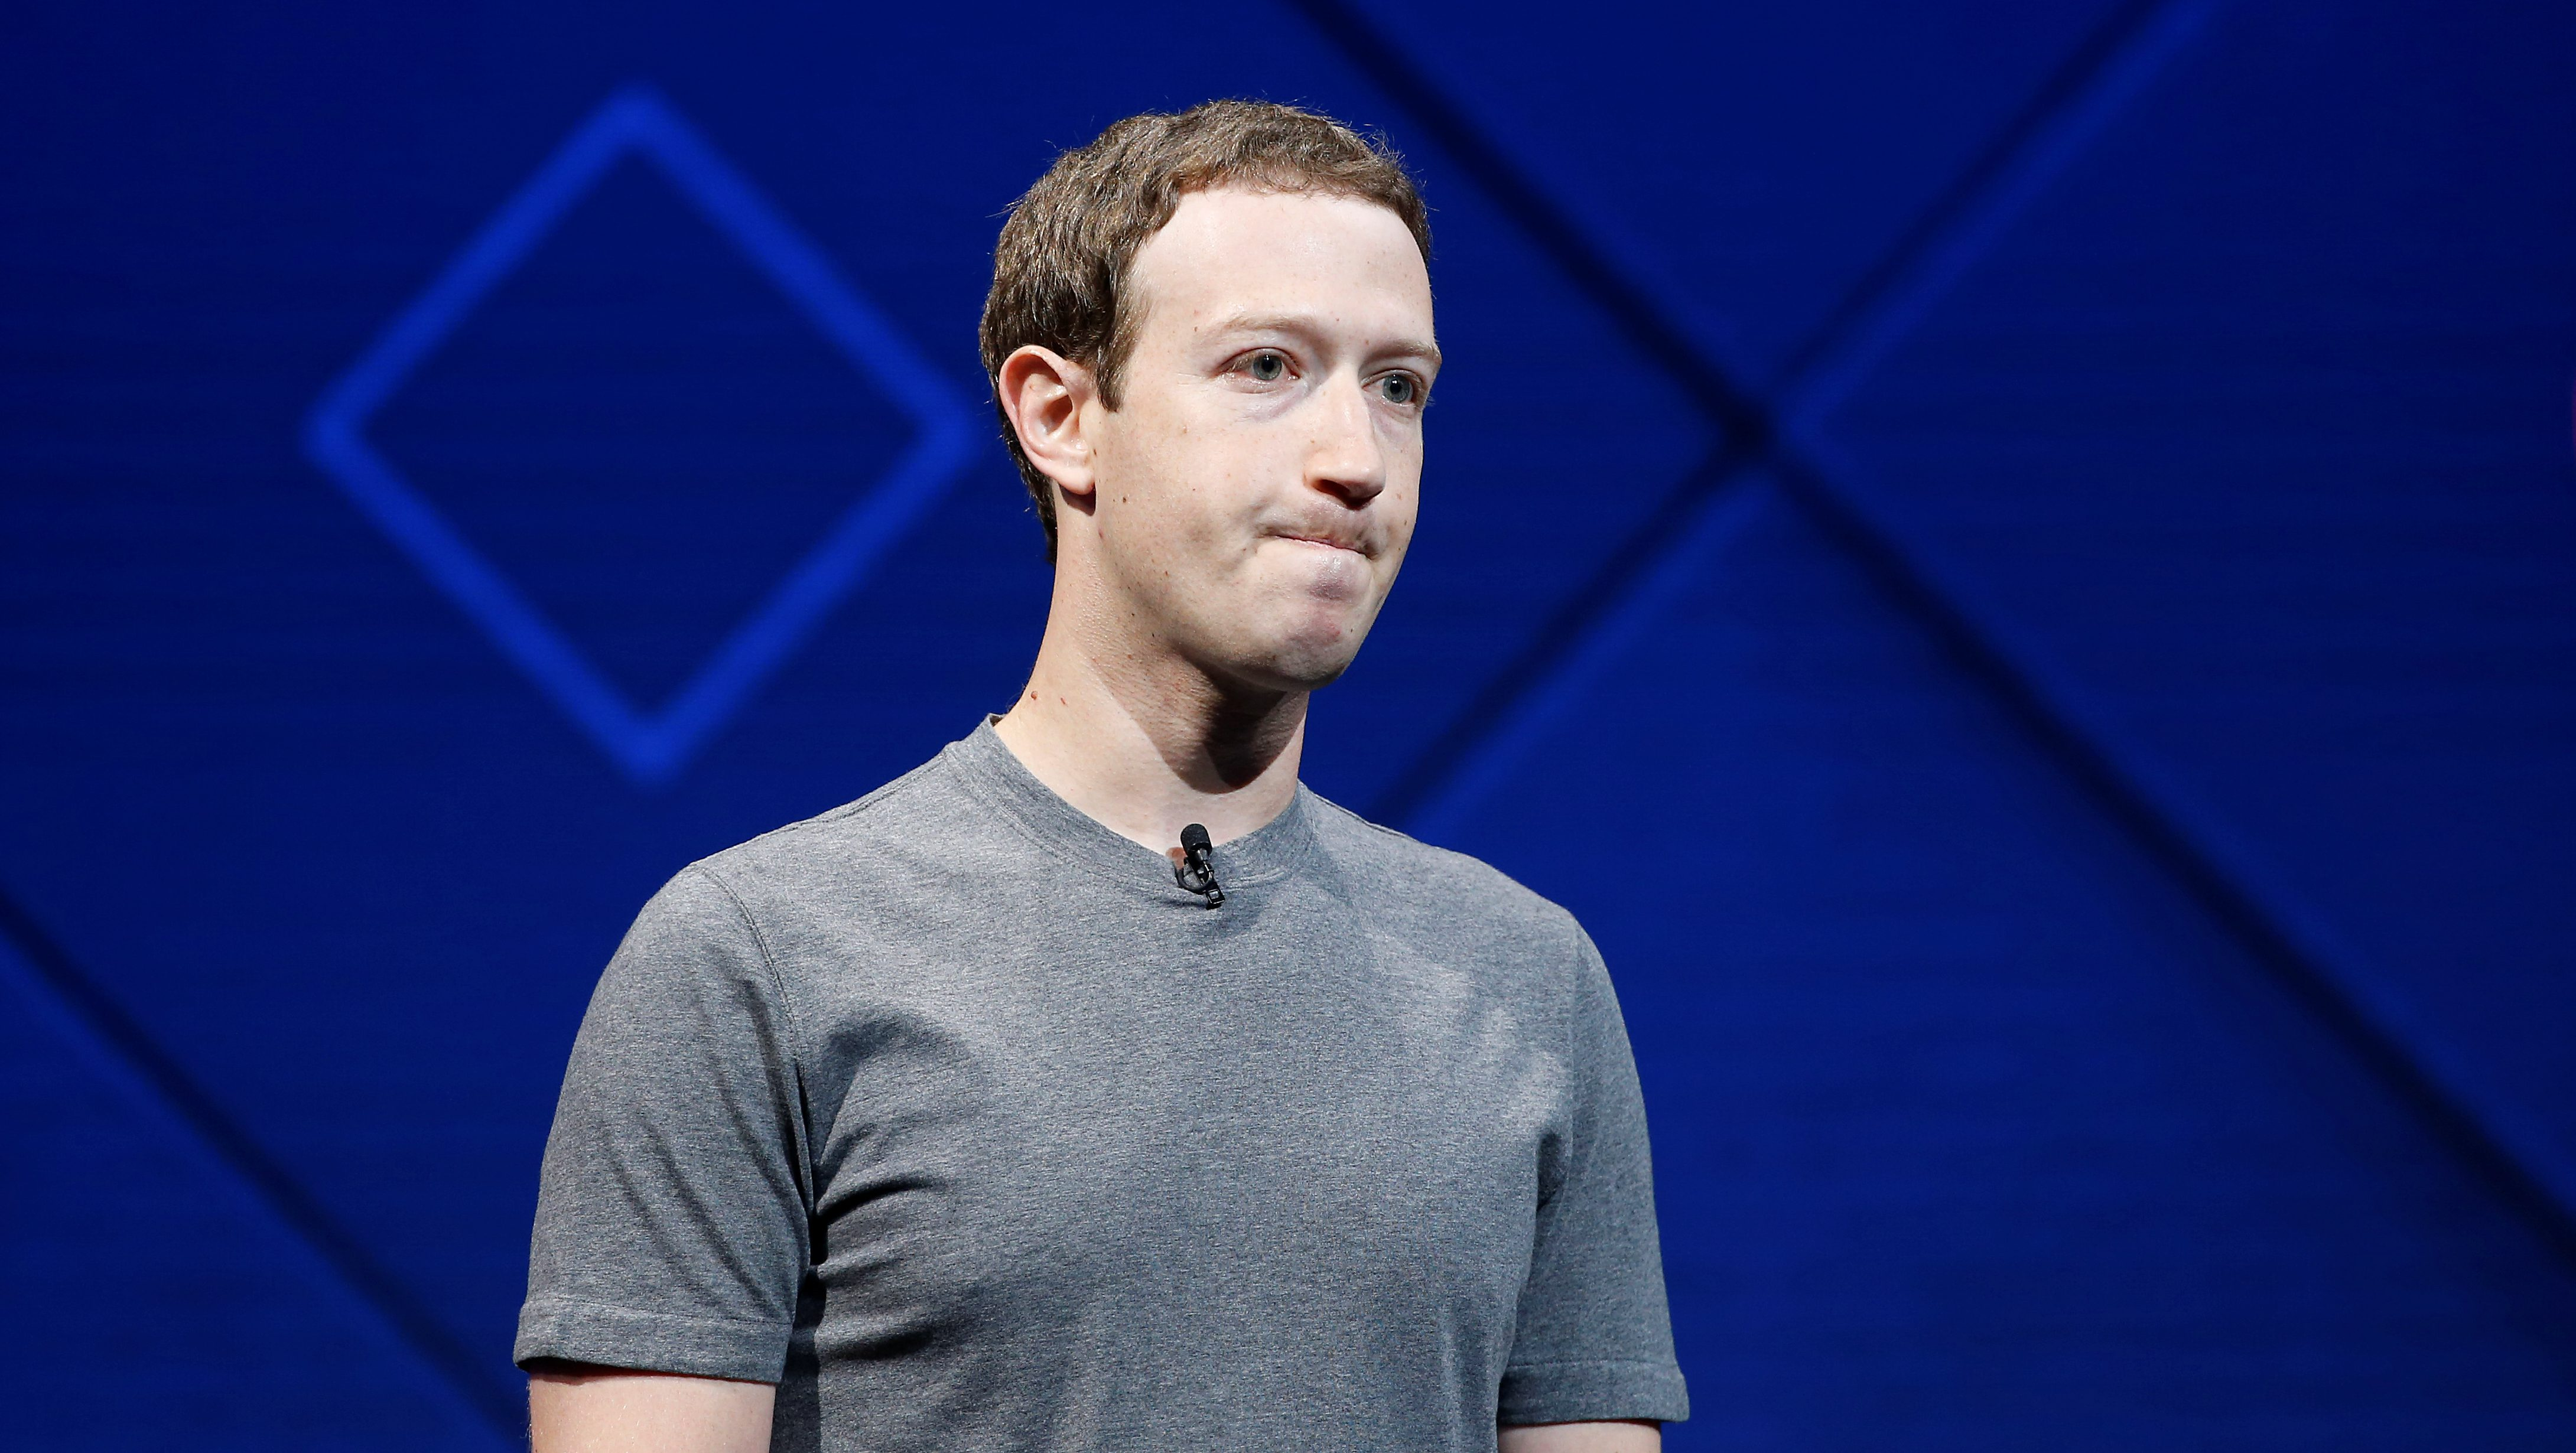 Facebook Founder and CEO Mark Zuckerberg speaks on stage during the annual Facebook F8 developers conference in San Jose, California, U.S., April 18, 2017. REUTERS/Stephen Lam - RC13DECFA440